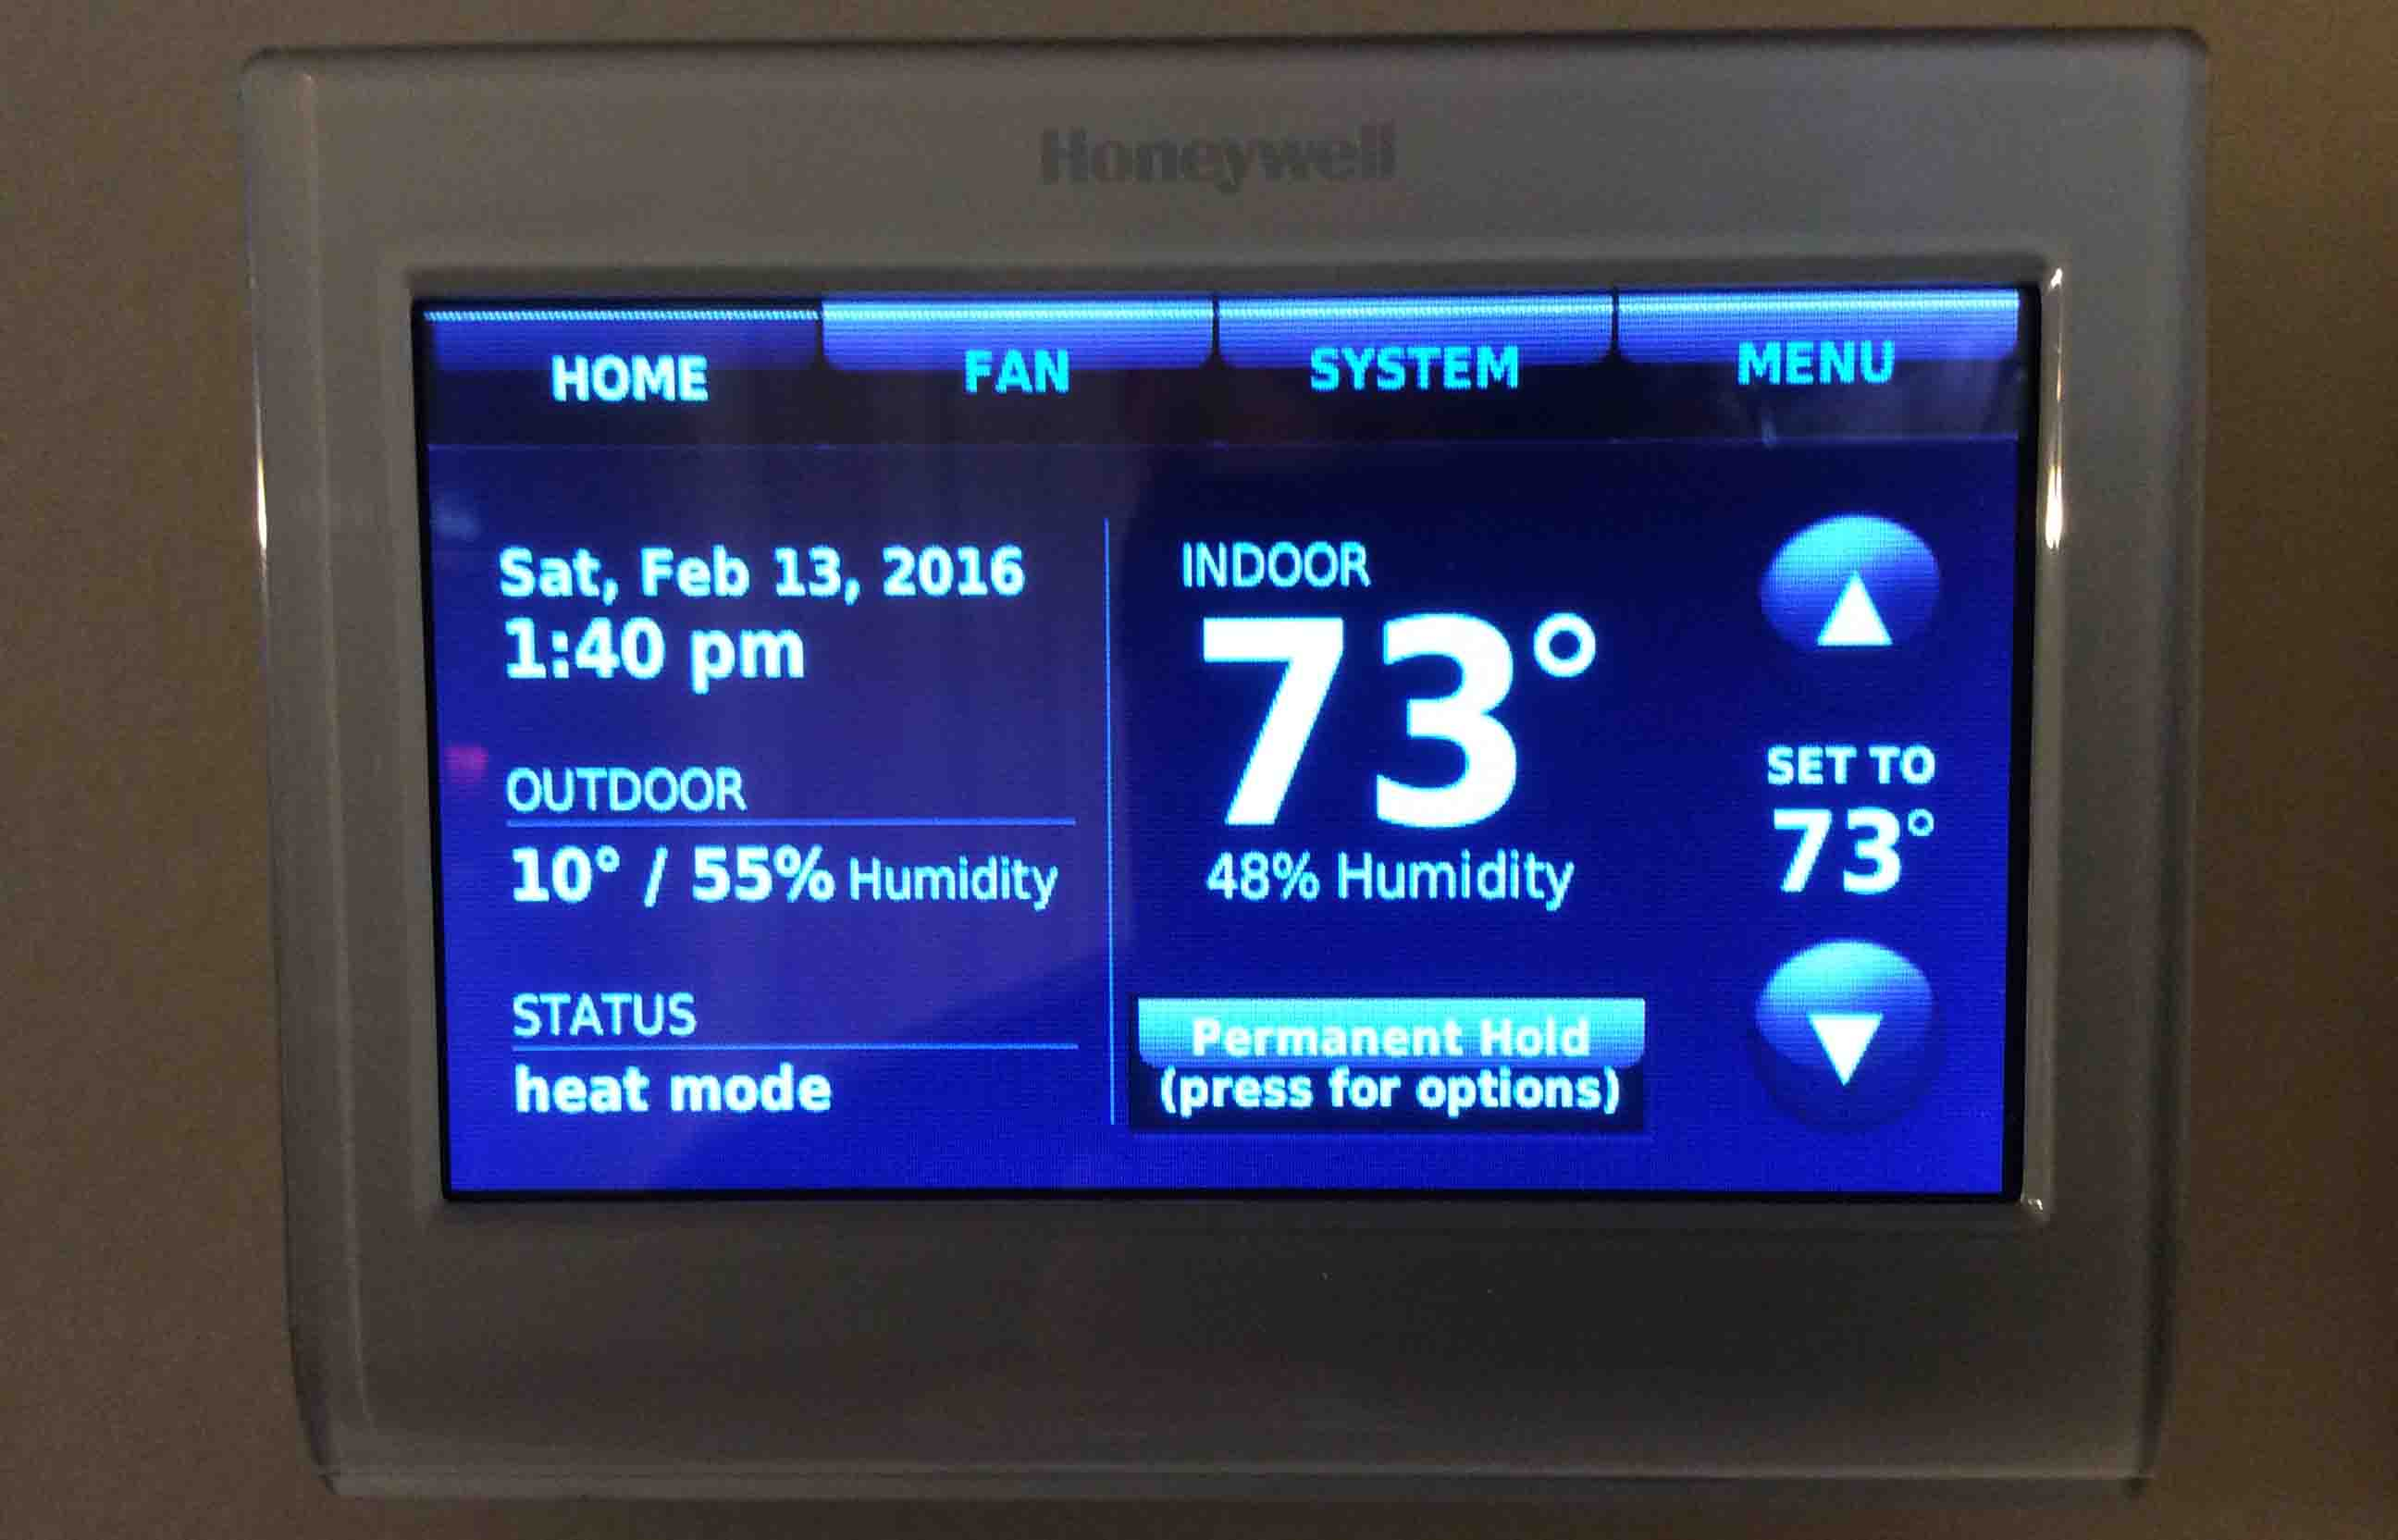 Fixing WiFi Problems on Honeywell RTH9580WF Smart Thermostat